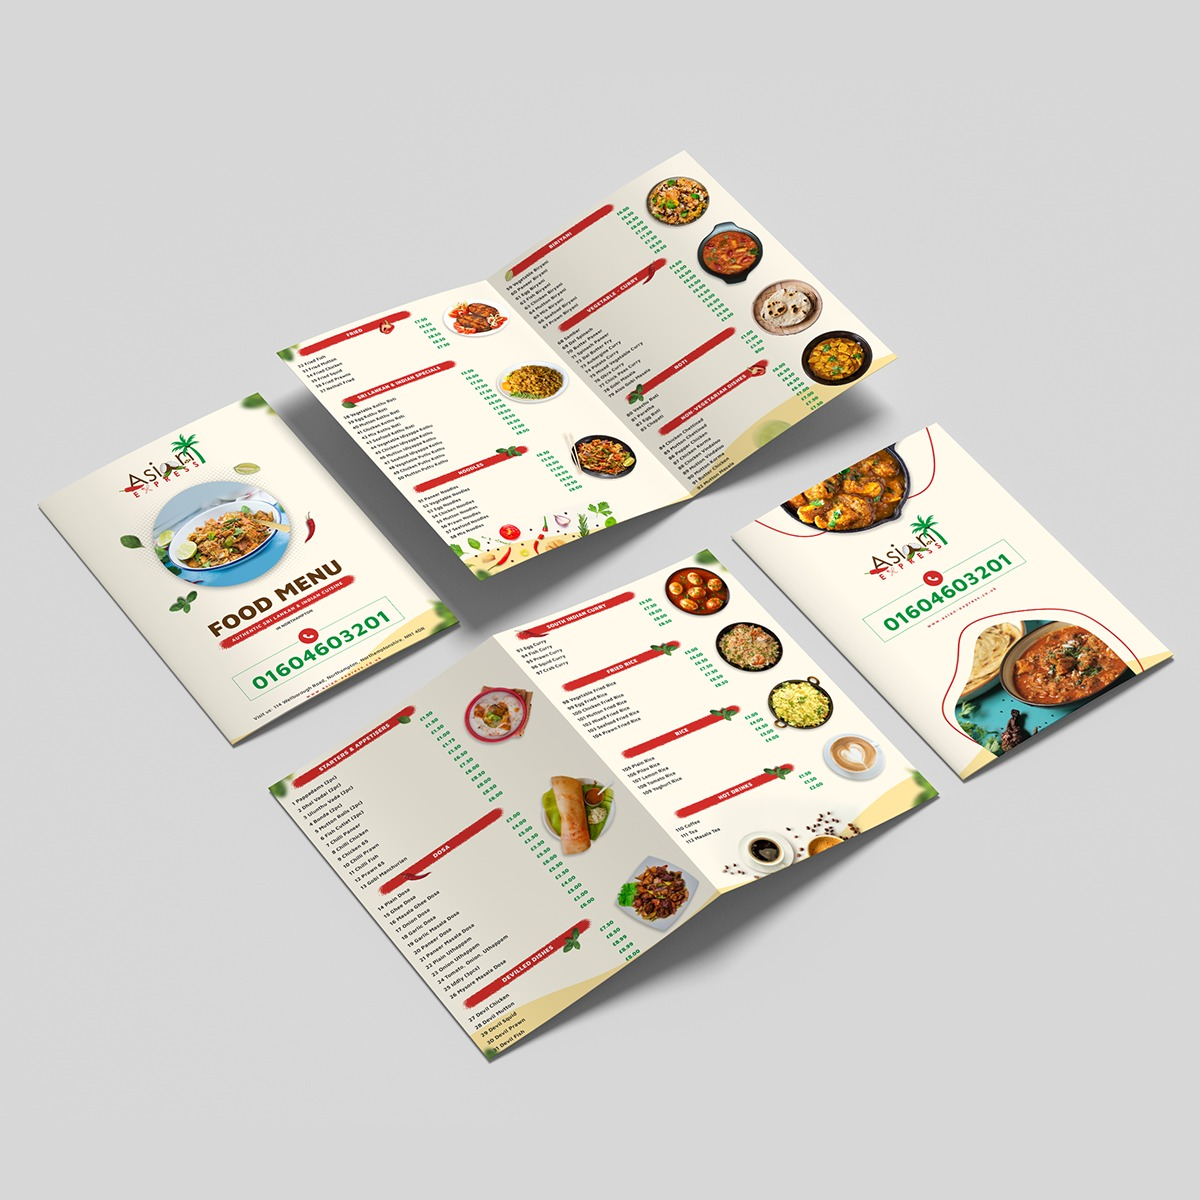 Food Menu Branding Design for Asian Express Restaurant